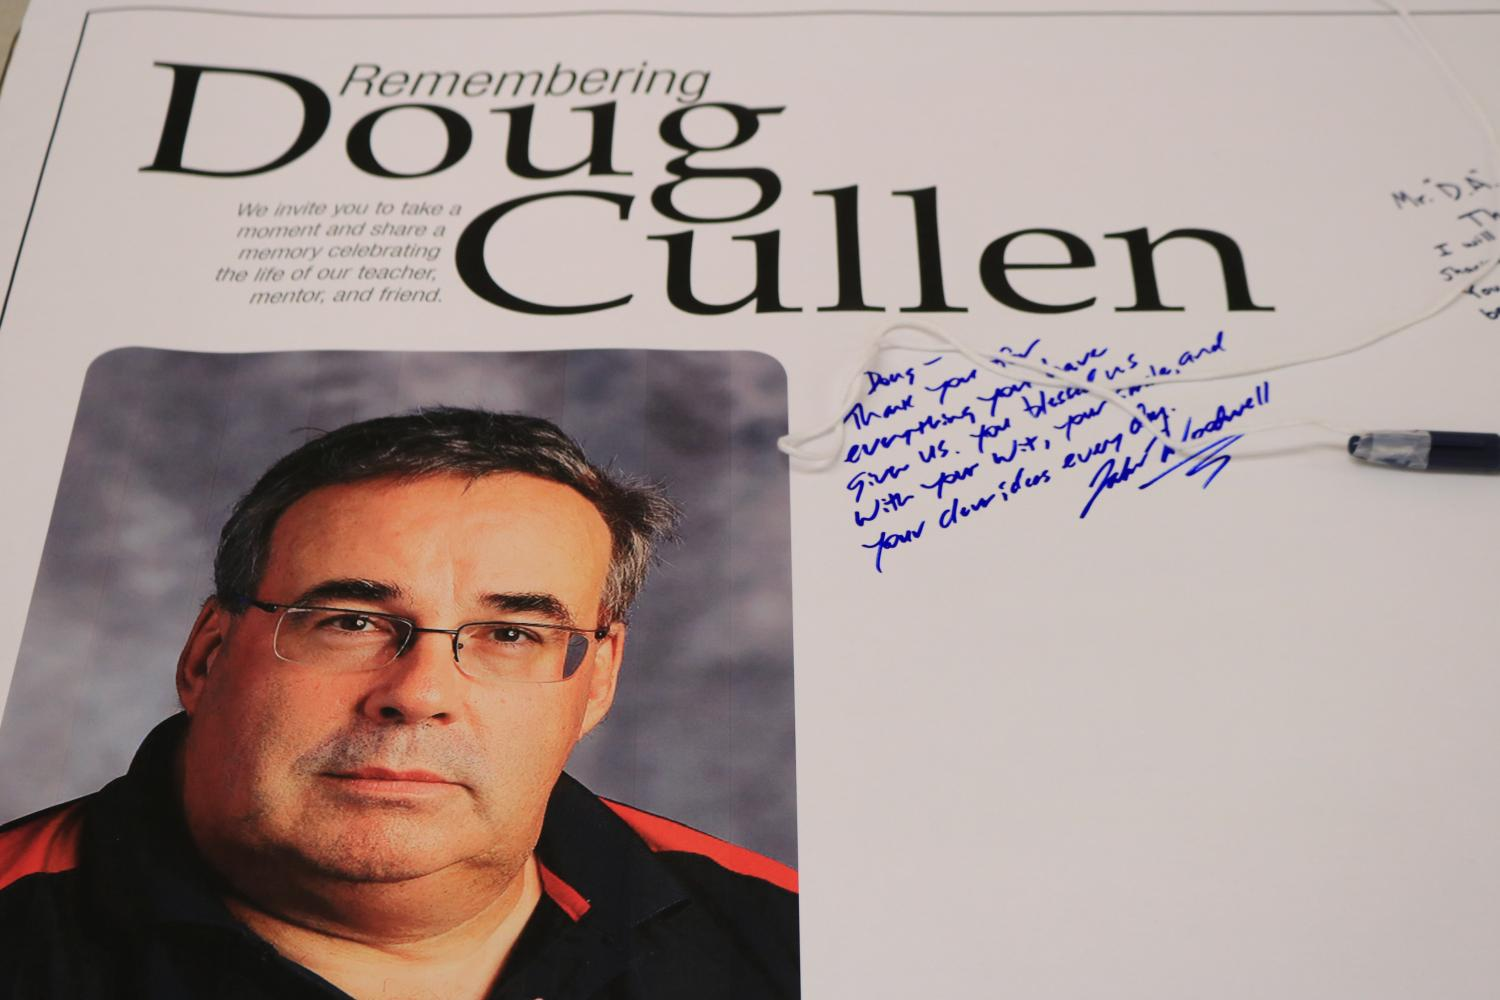 A poster, located in front of room 250, is available for students, faculty and staff to leave notes of remembrance for Douglas Cullen.